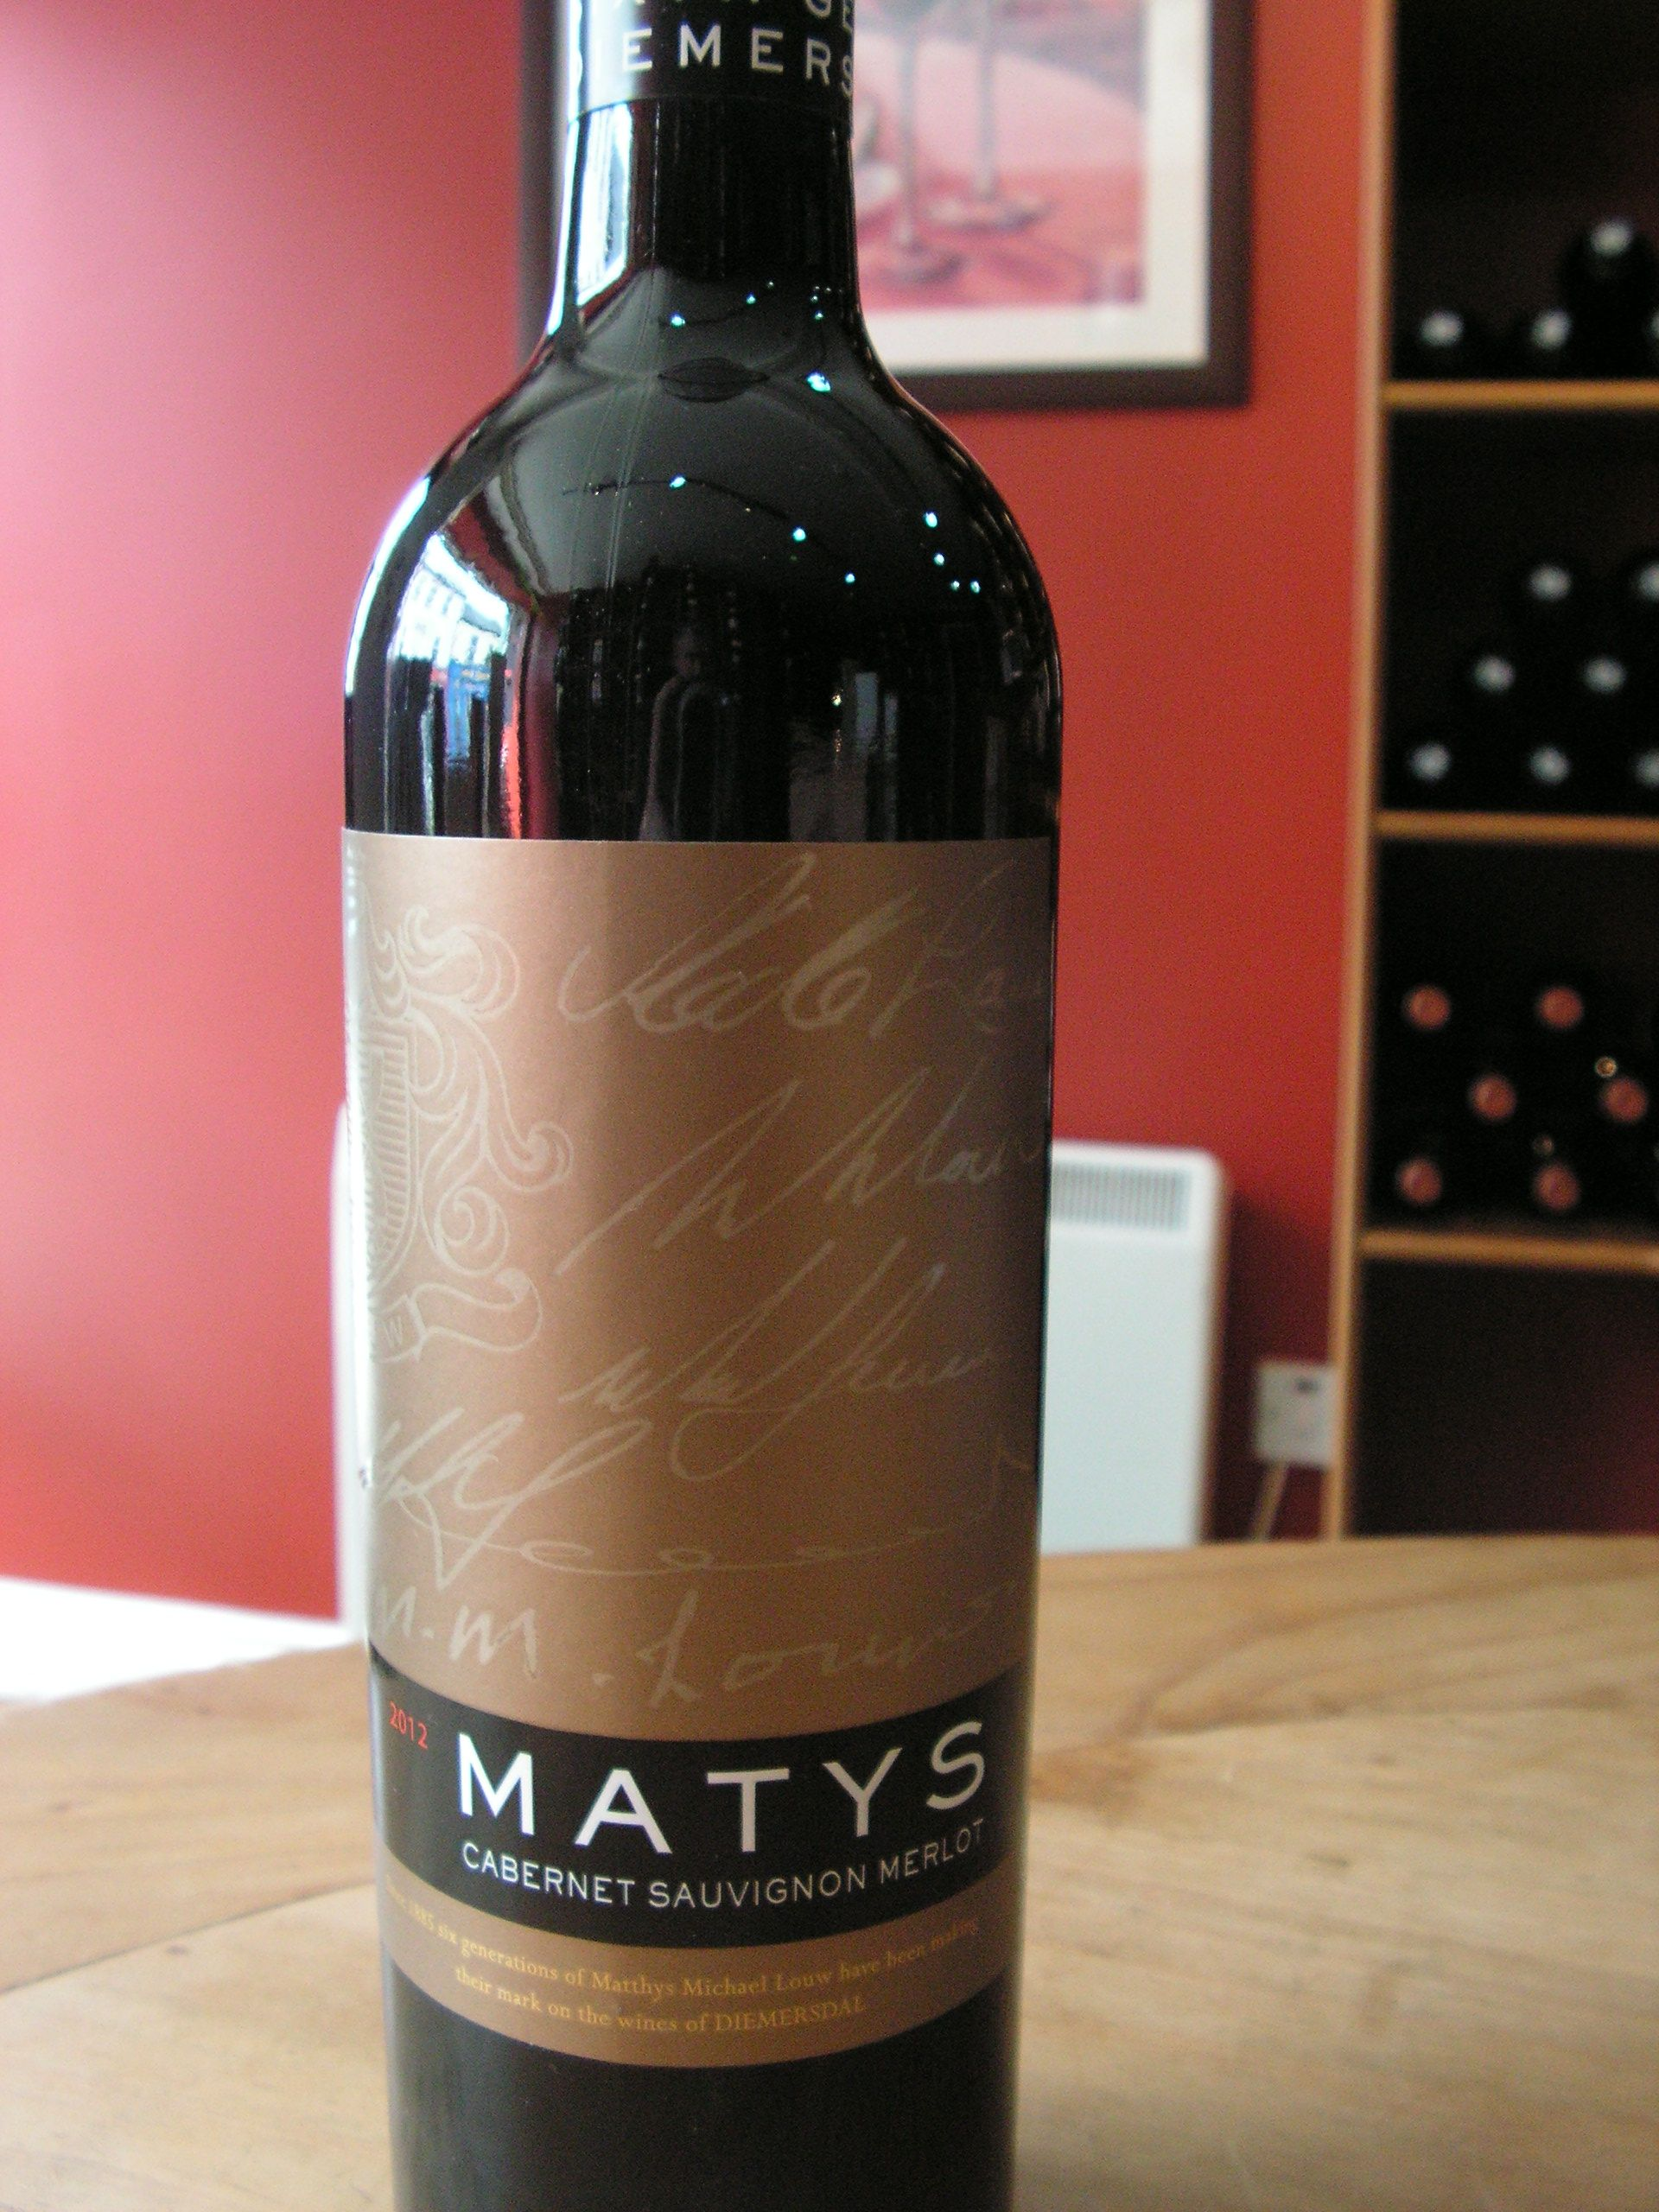 Matys Red From The Diemersdal Vineyard In South Africa This Medium Bodied Cabernet Sauvignon Merlot Blend Is A Wine For Any Occasion